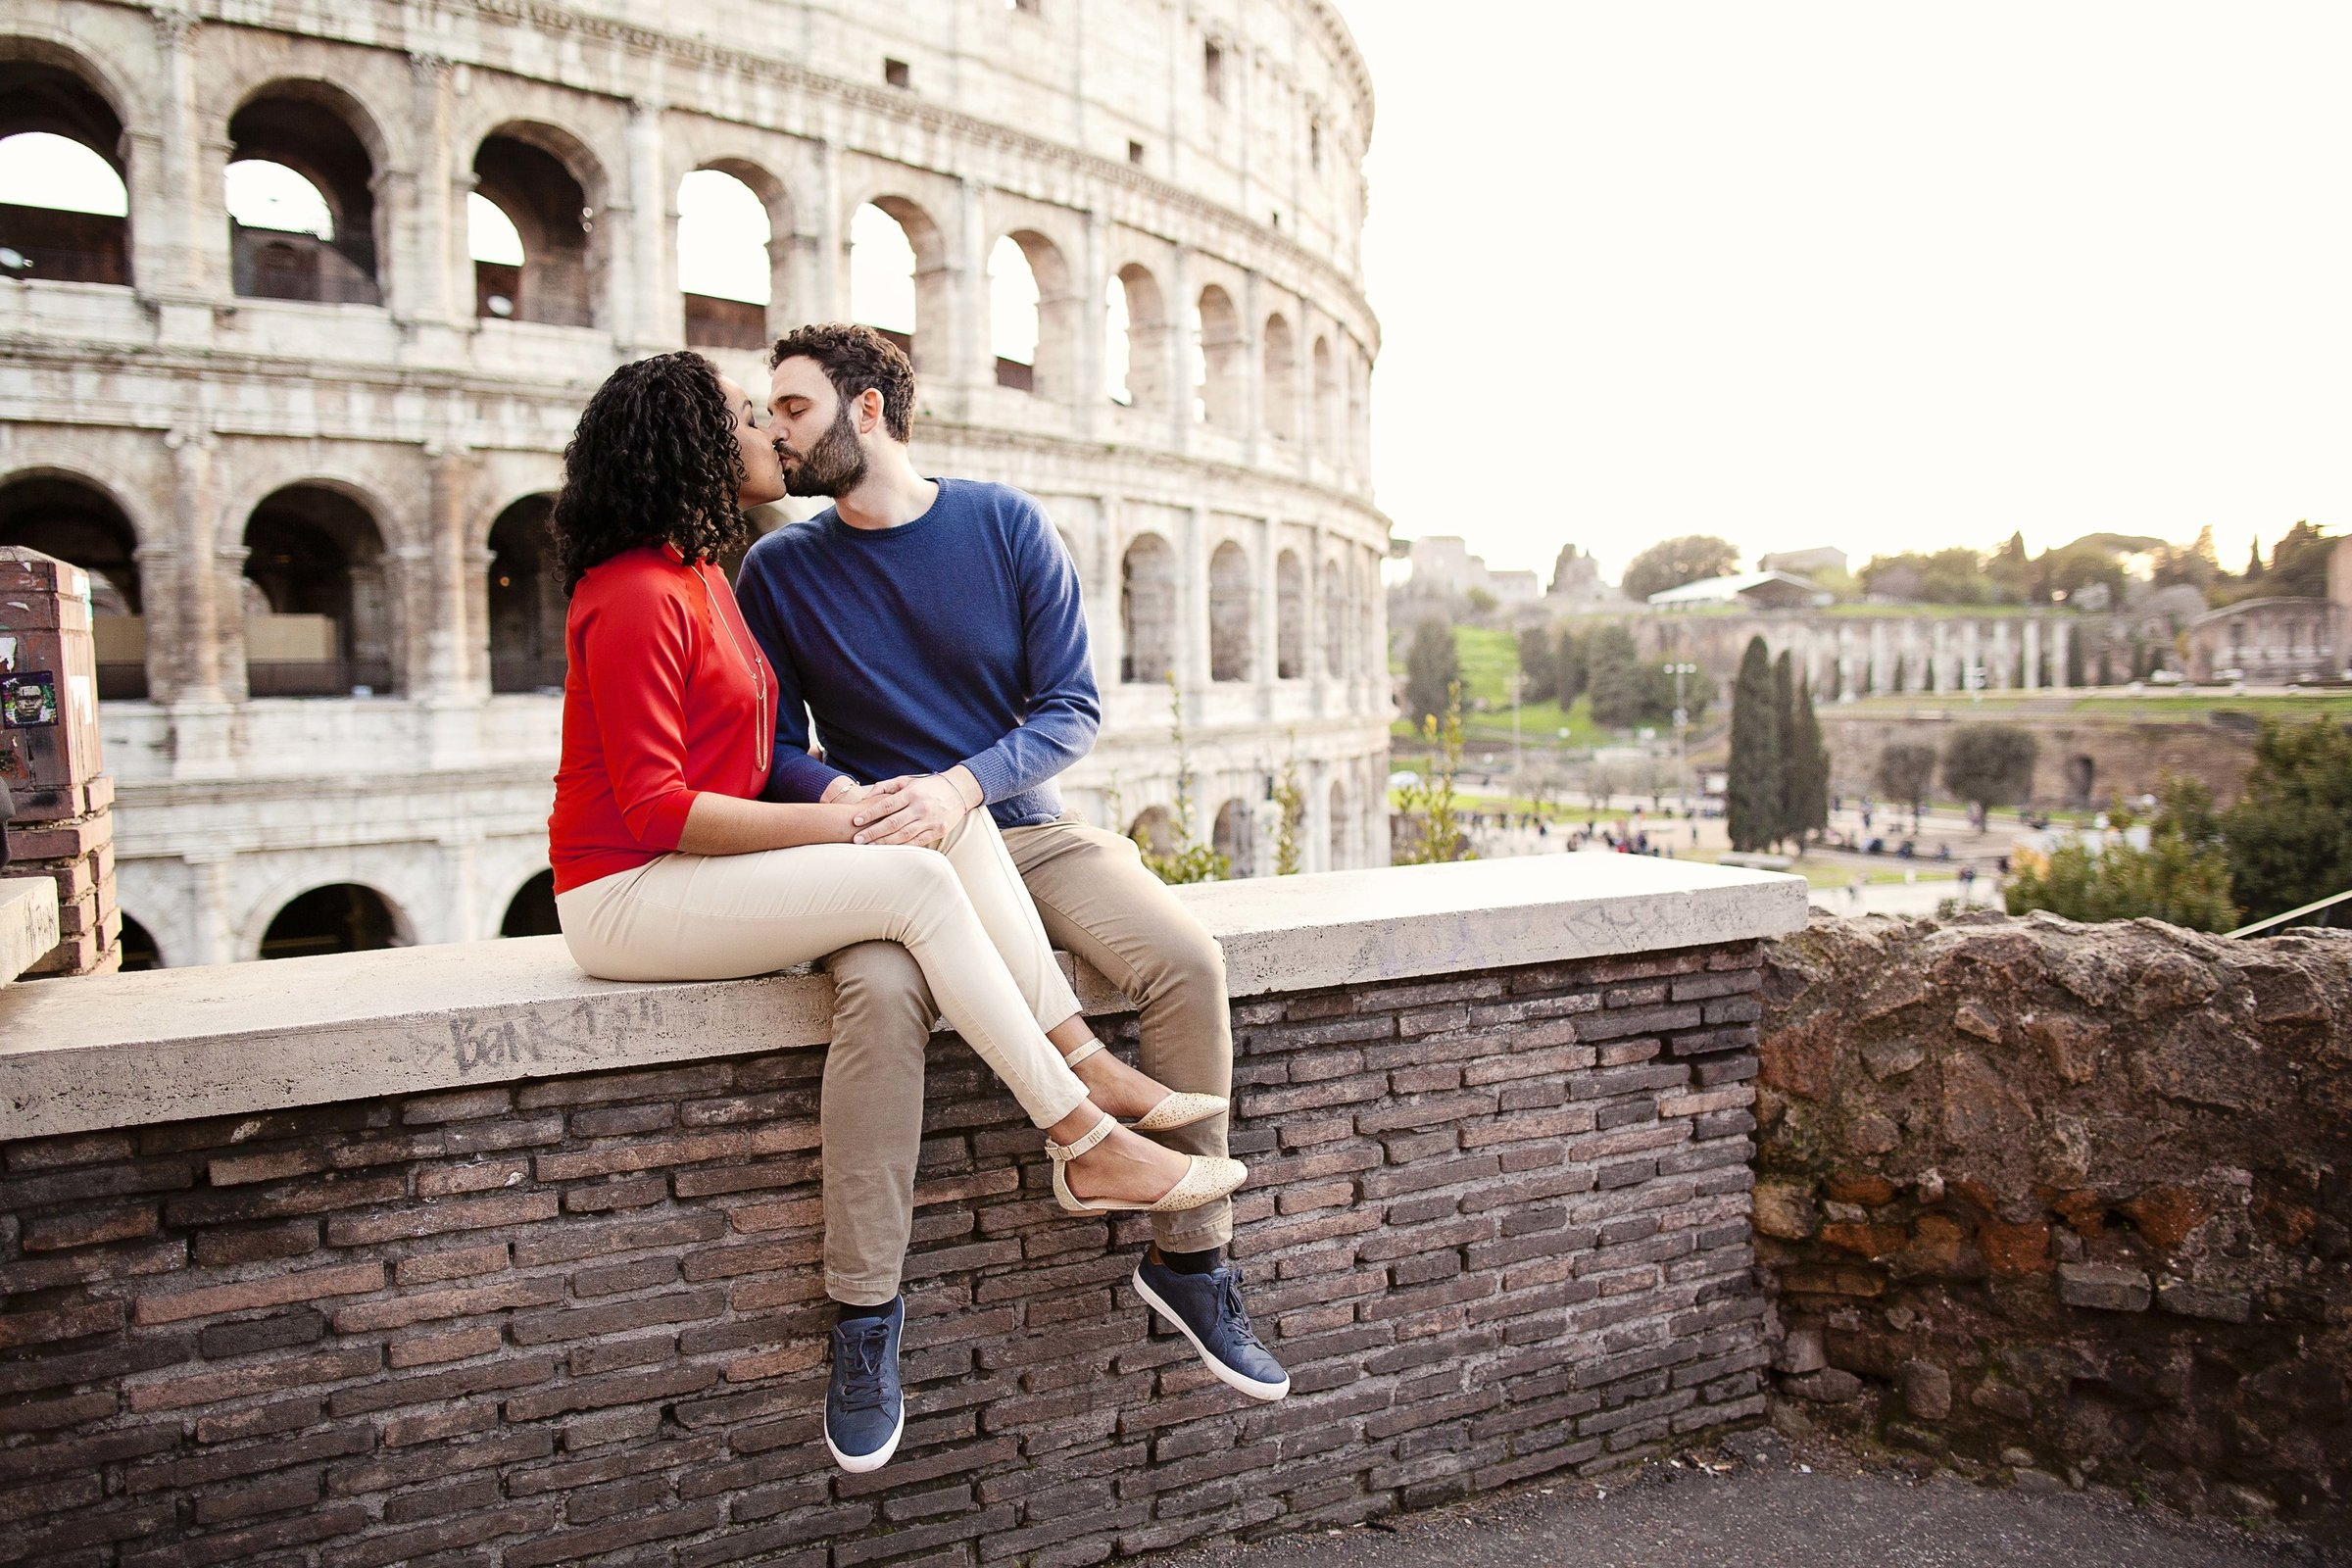 Tricia Anne photography - Rome Photographer - Rome Engagement Photographer - Rome Wedding Photographer - Rome Destination Photographer - Rome Photo Shoot - Rome Solo Travel Photographer